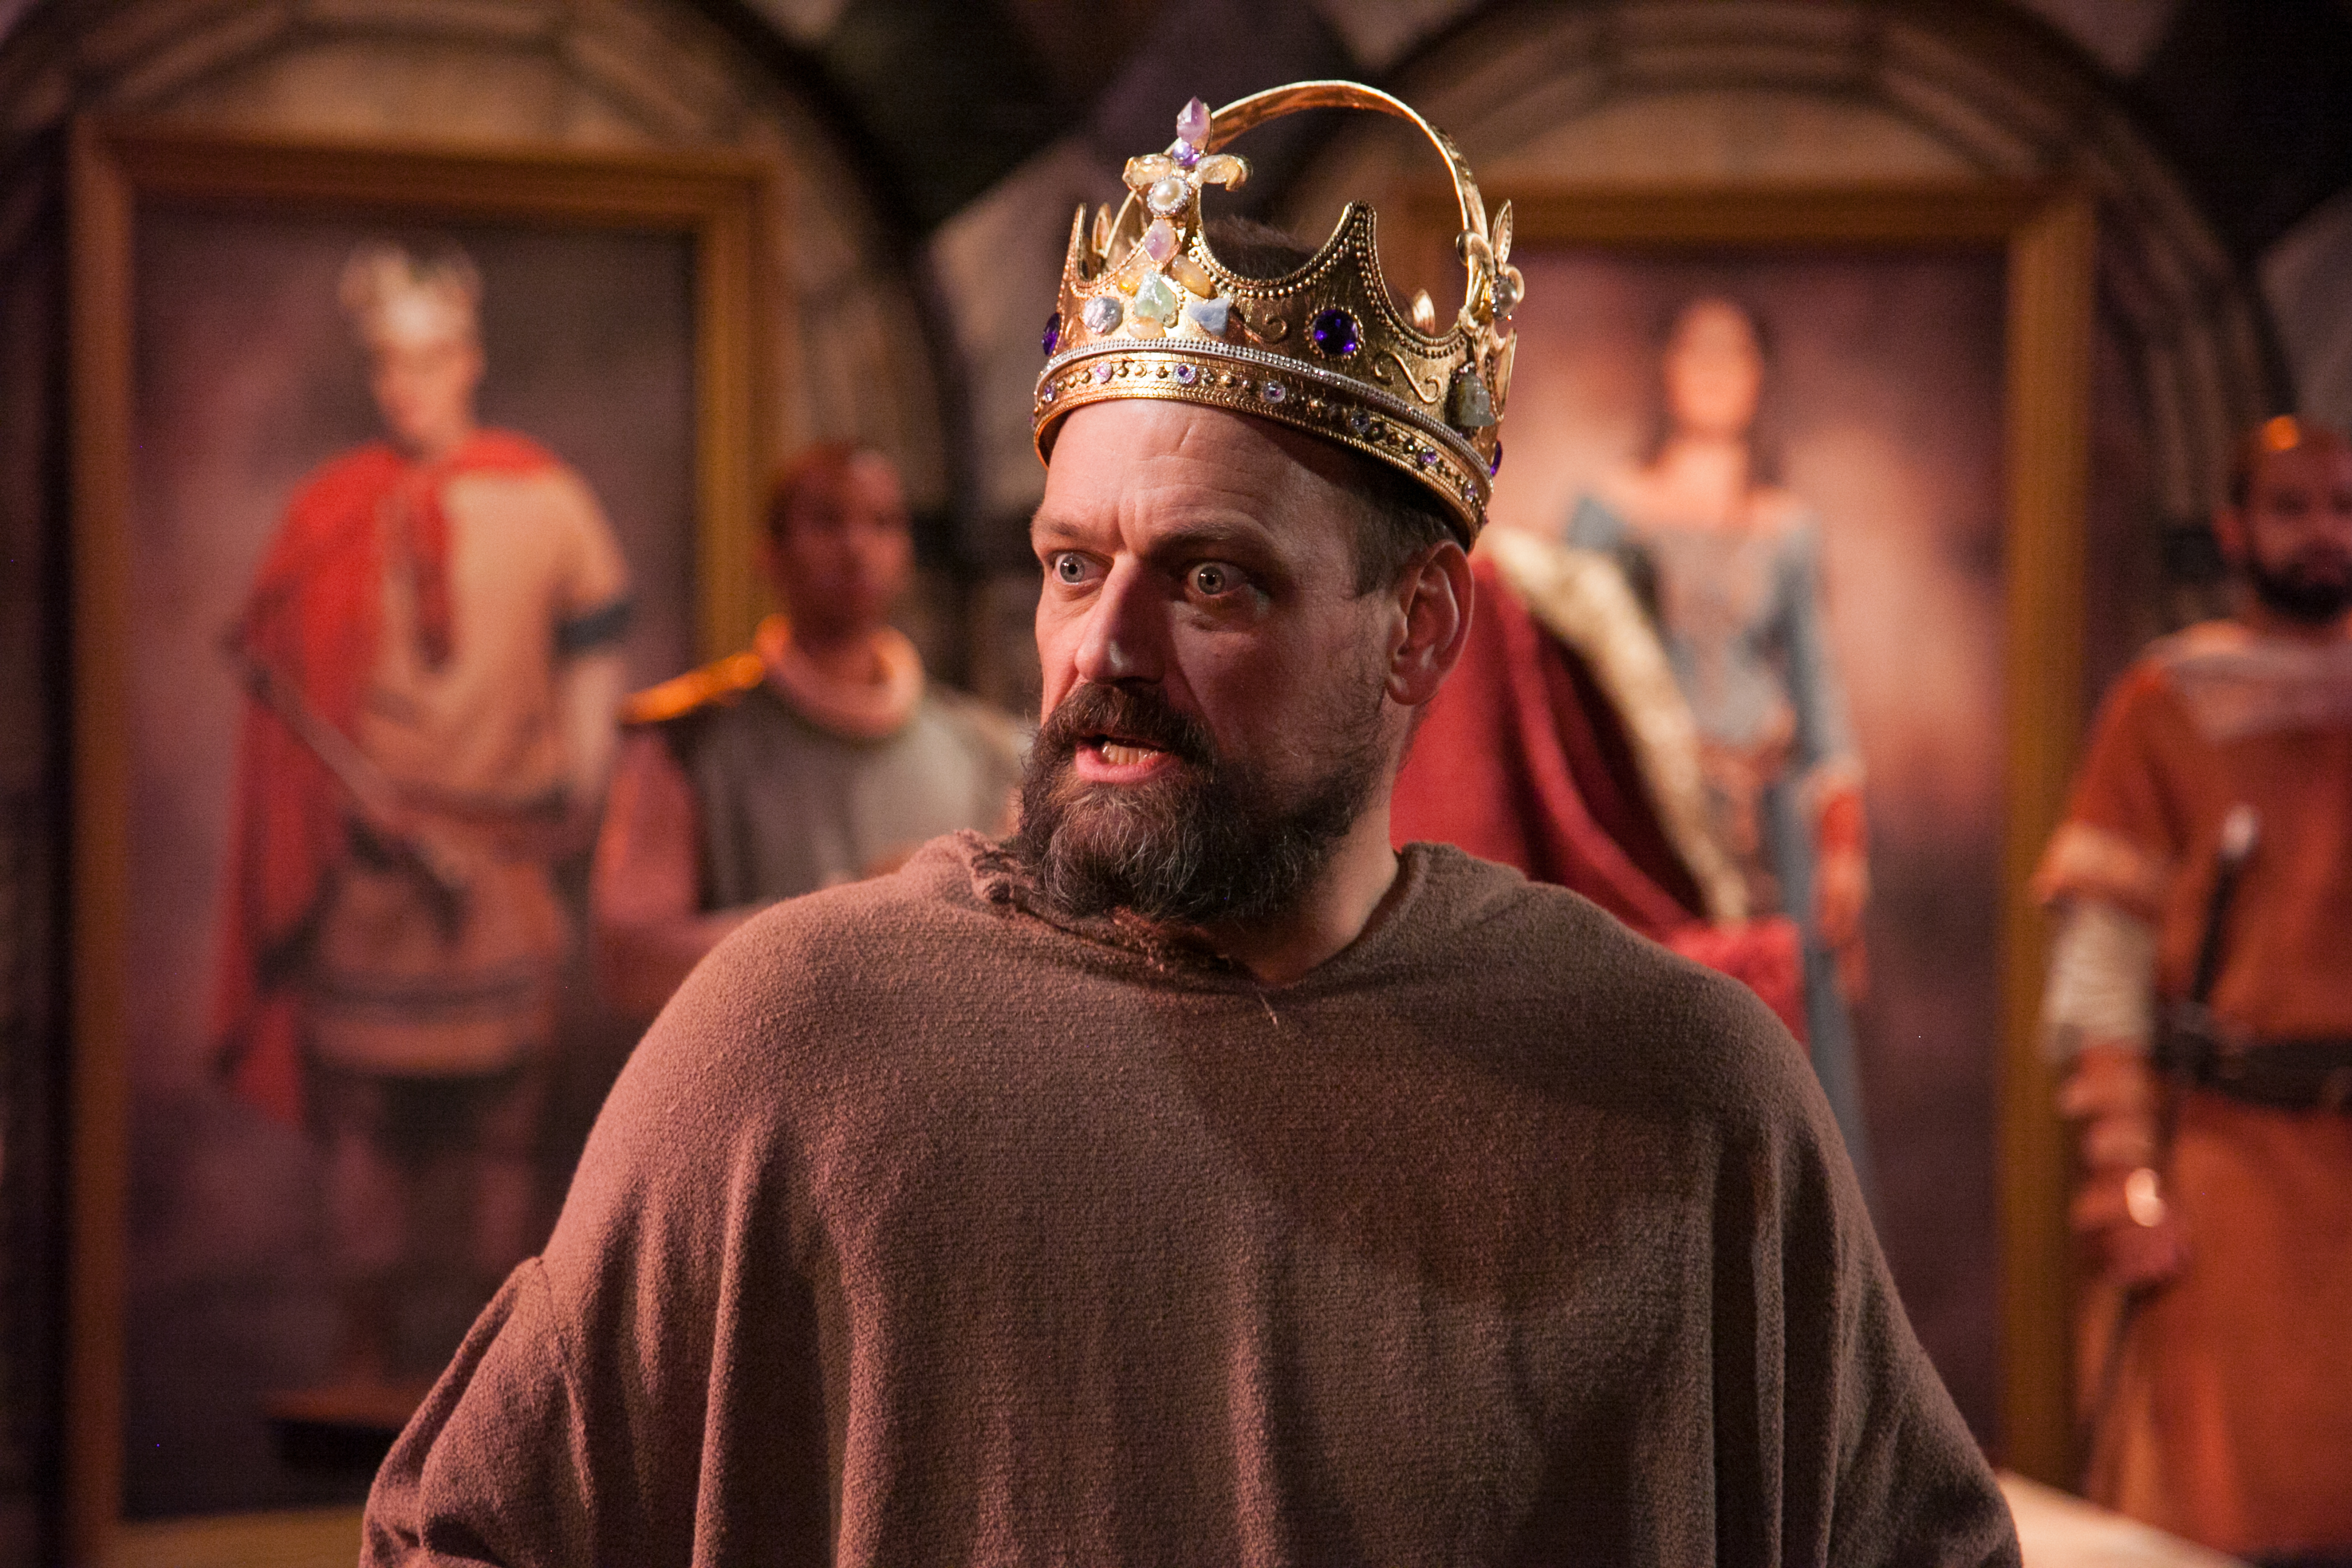 1 henry iv essays Free henry iv papers, essays, and research papers.